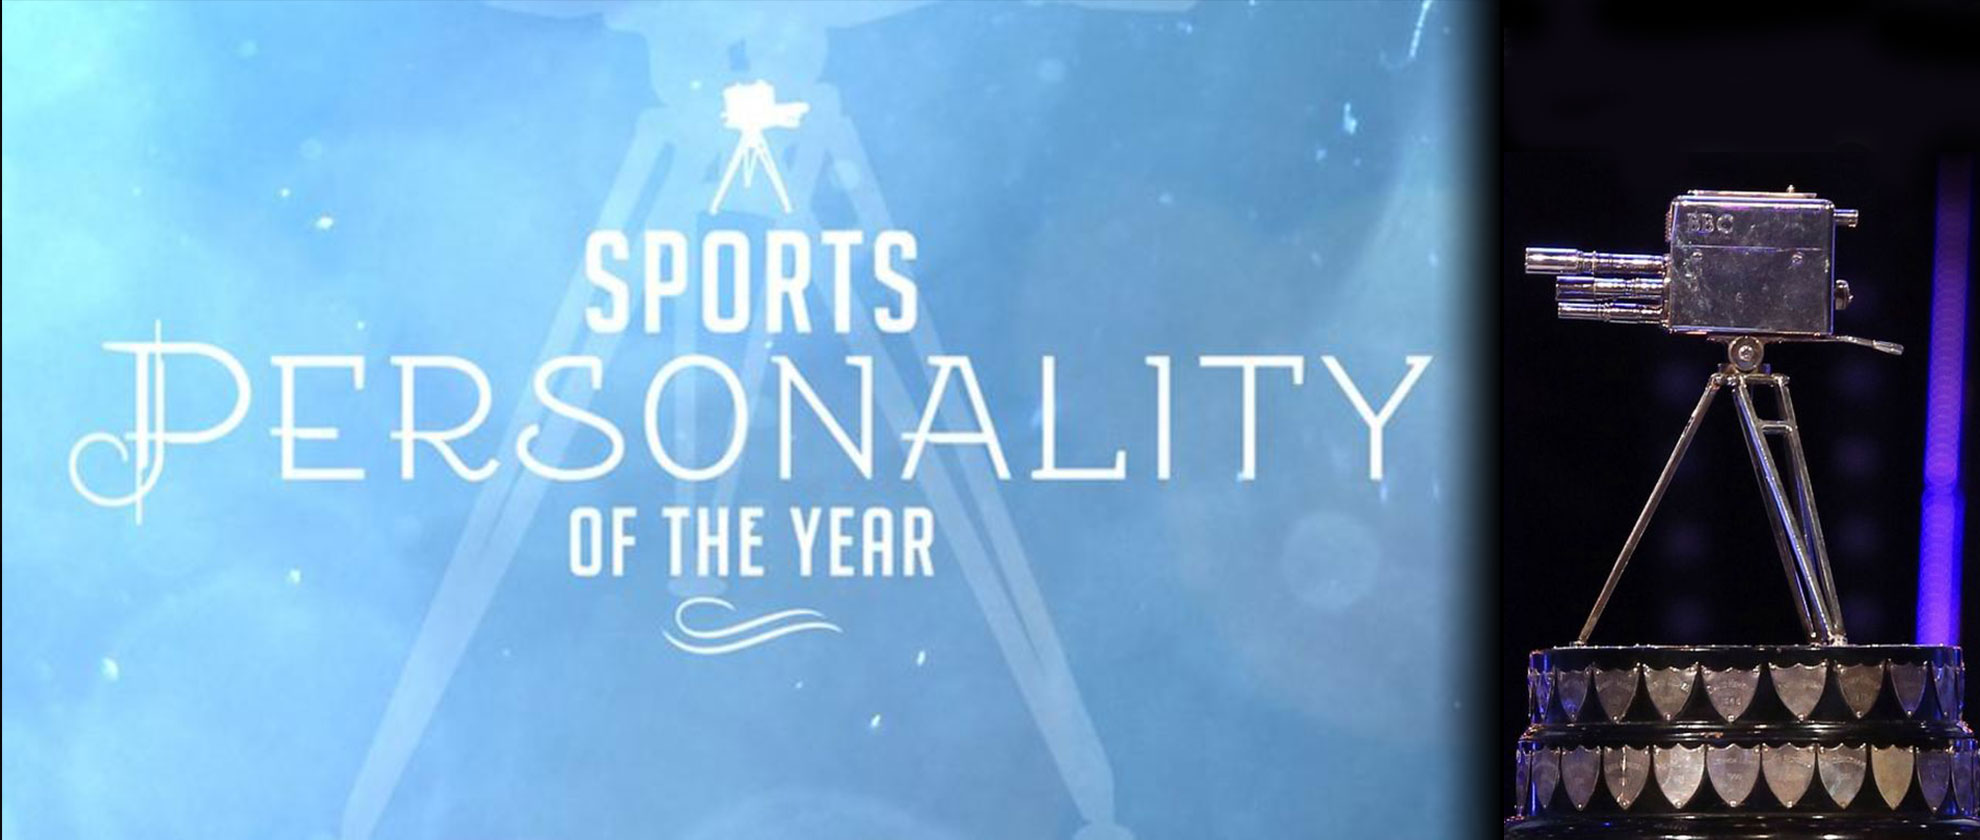 Sports Personality of the Year 2018